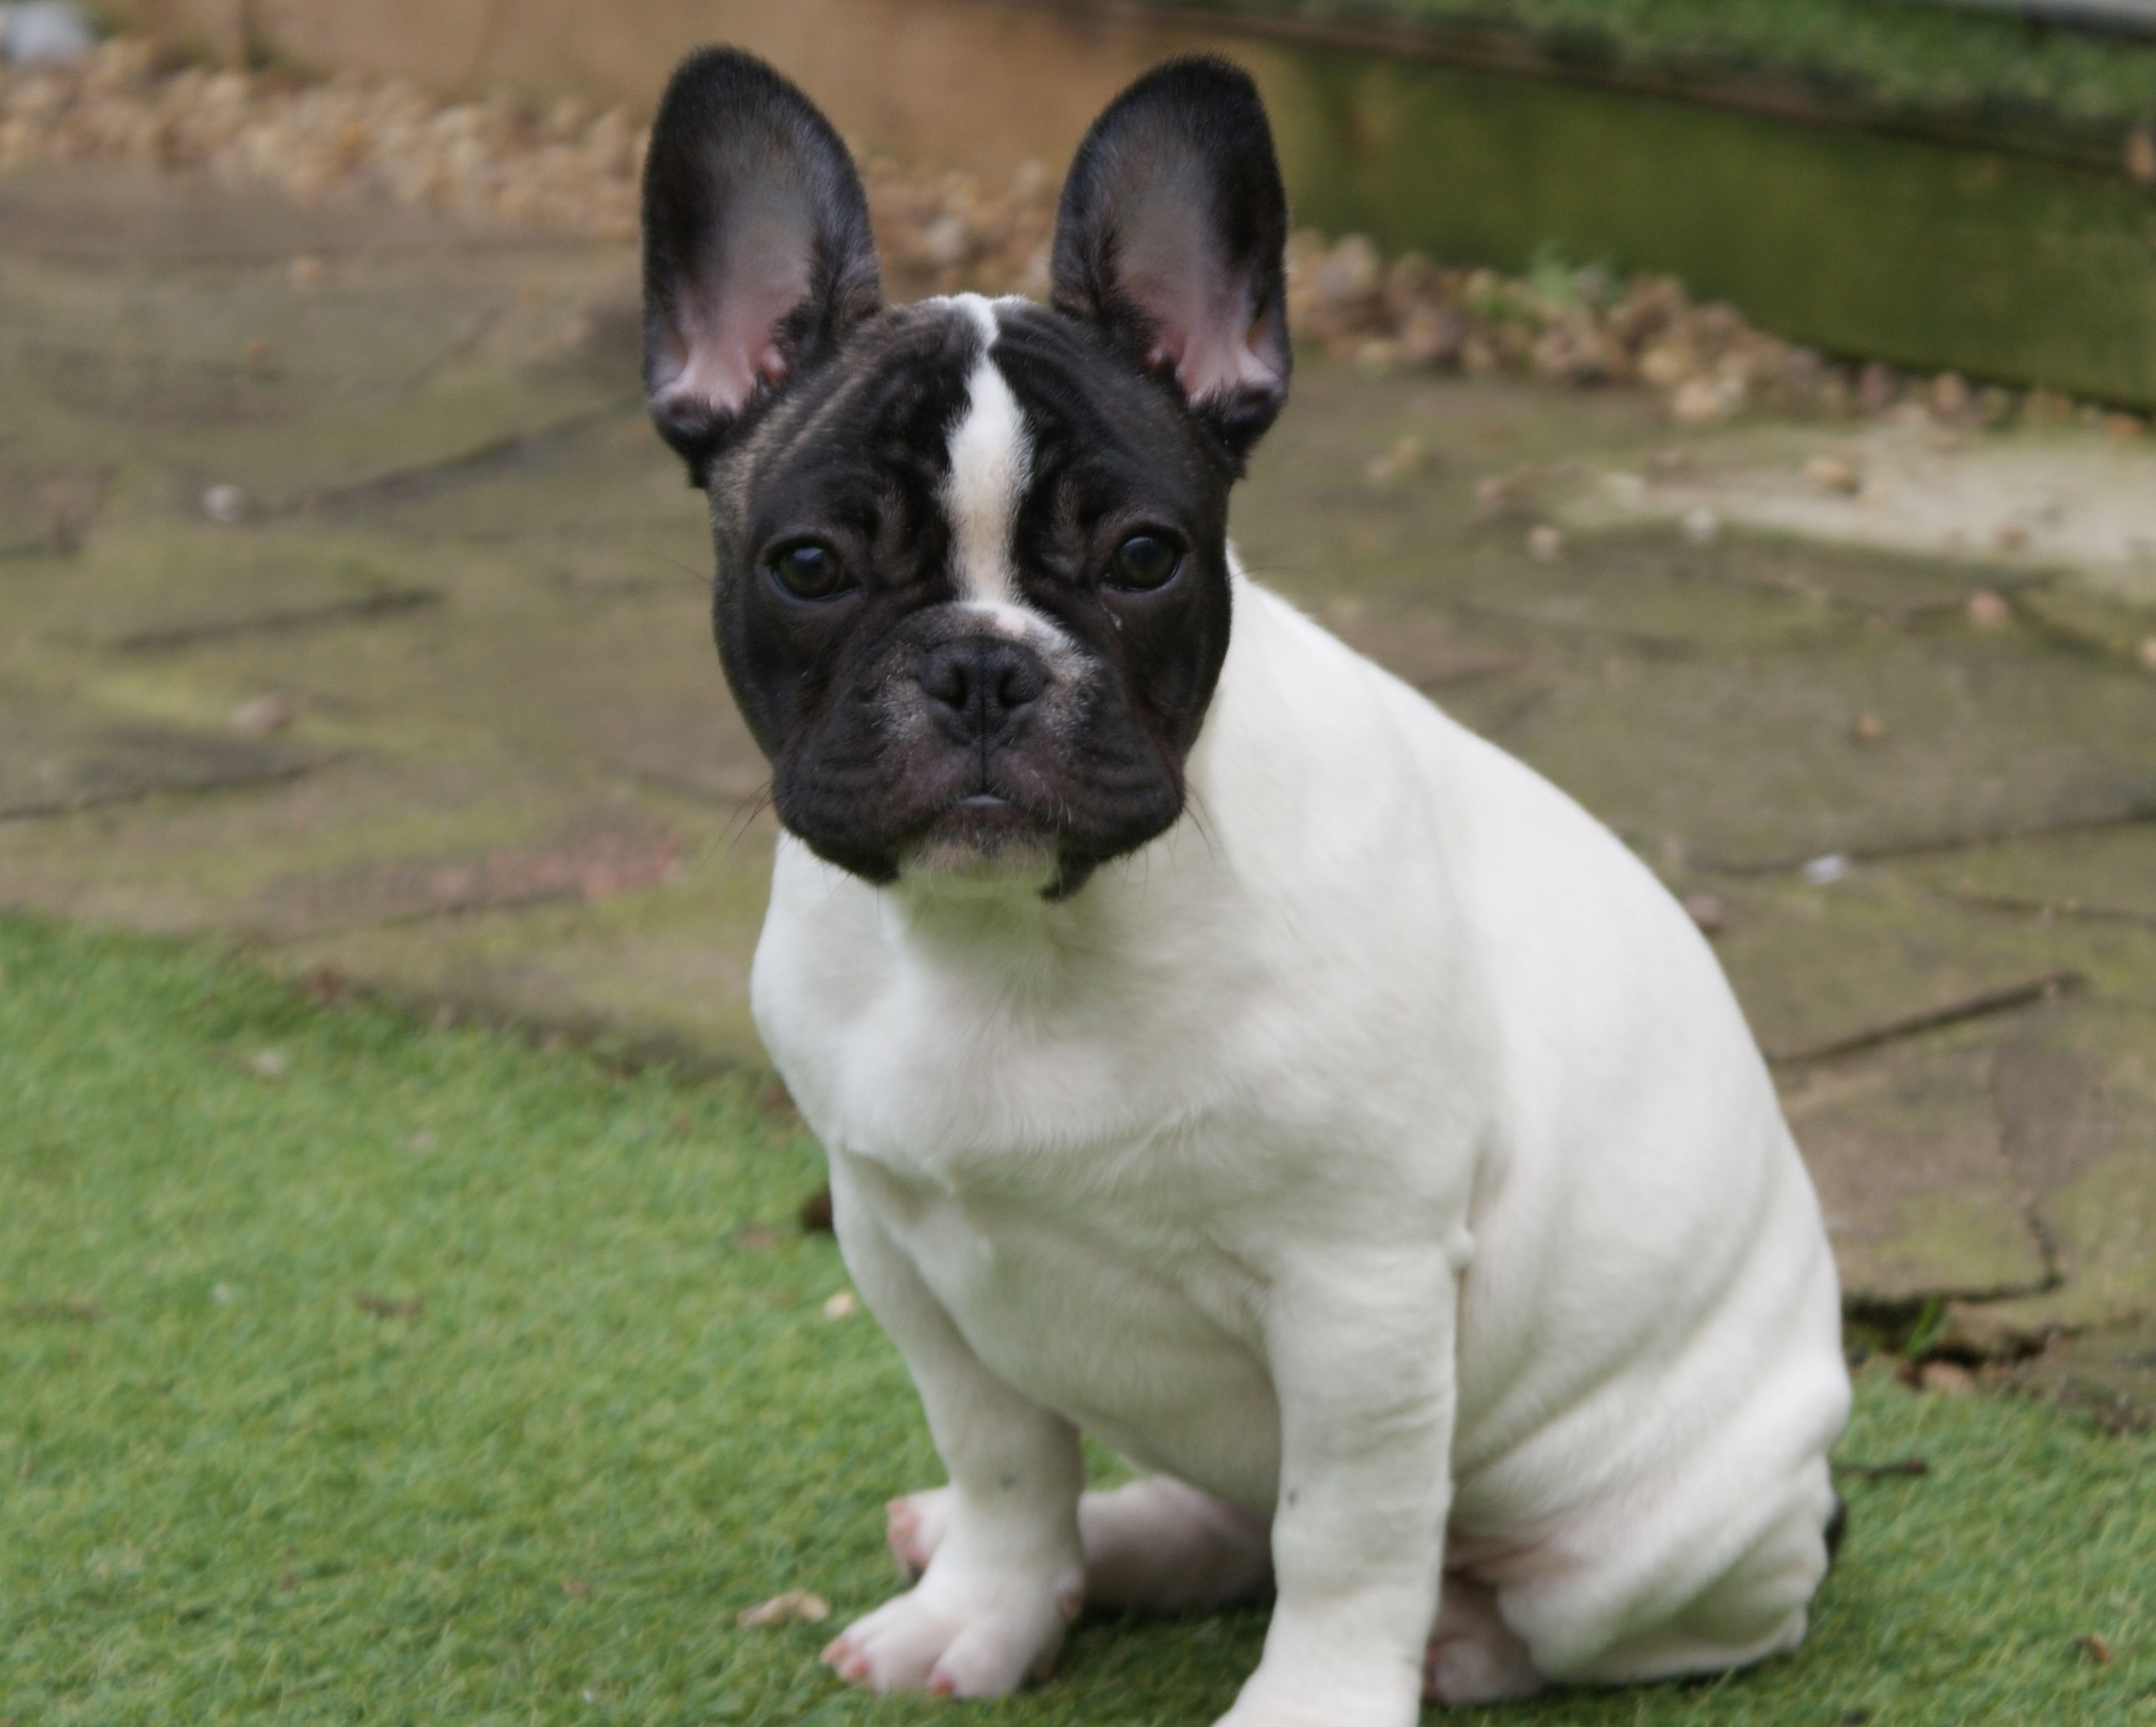 French Bulldog Boston Terrier Mix Hd Wallpaper For Desktop Bulldoggen Mix Ebay Kleinanzeigen A In 2020 Pitbull Terrier Puppies French Bulldog Mix French Bulldog Dog